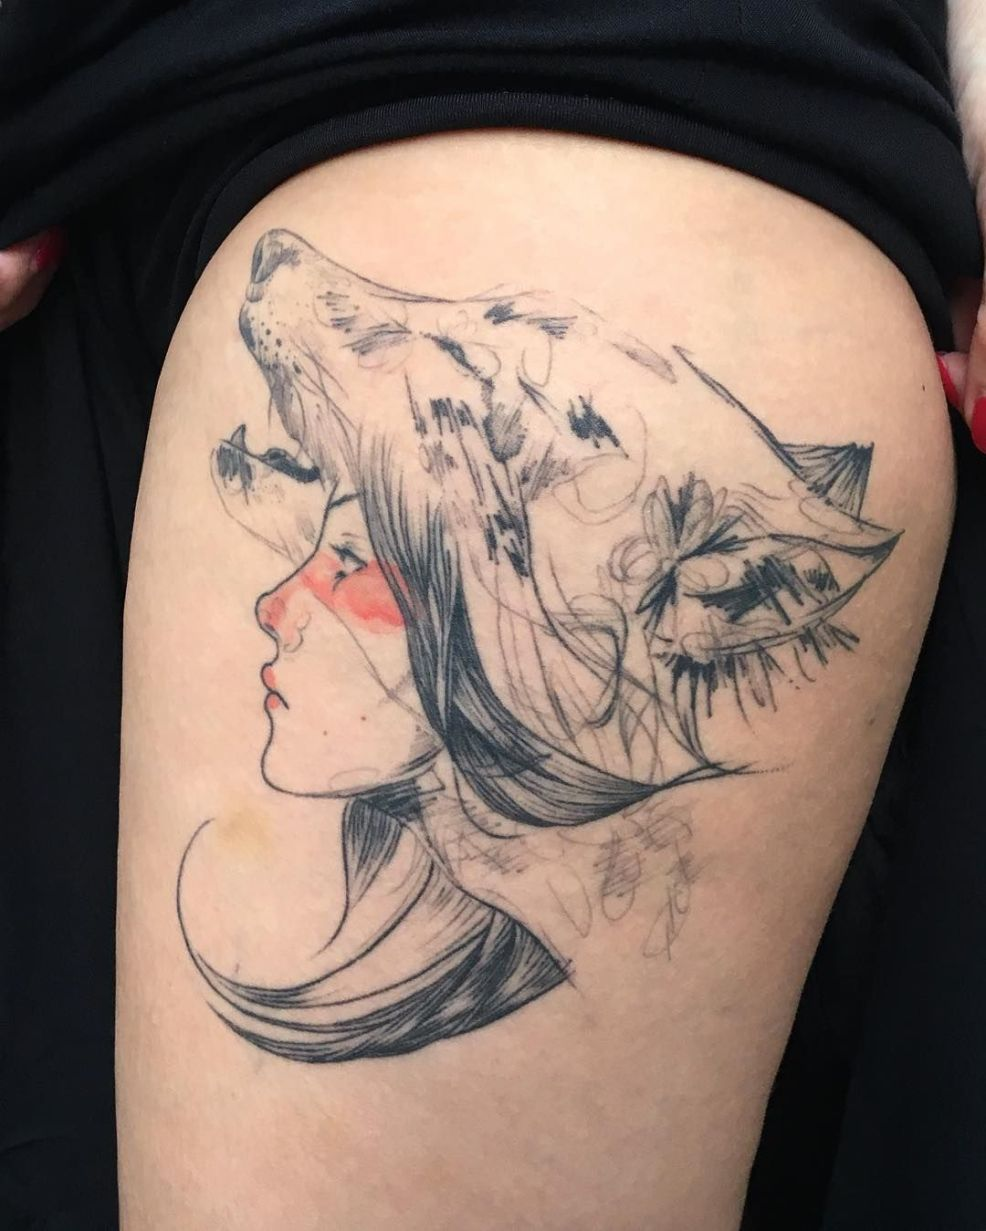 10 Singapore Based Tattoo Artists That Will Get You Ink Spired